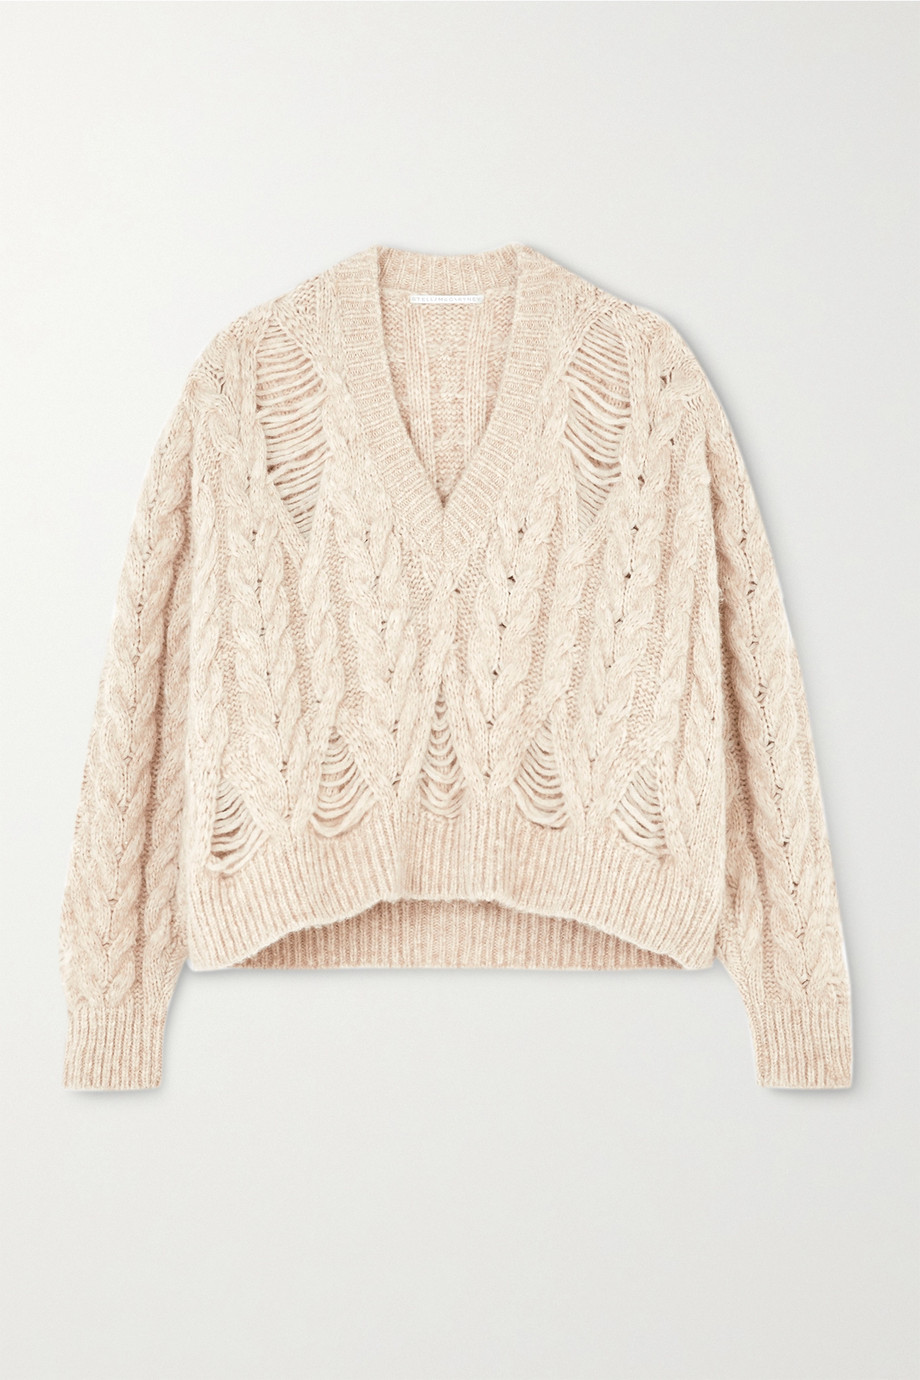 Stella McCartney Distressed cable-knit alpaca-blend sweater